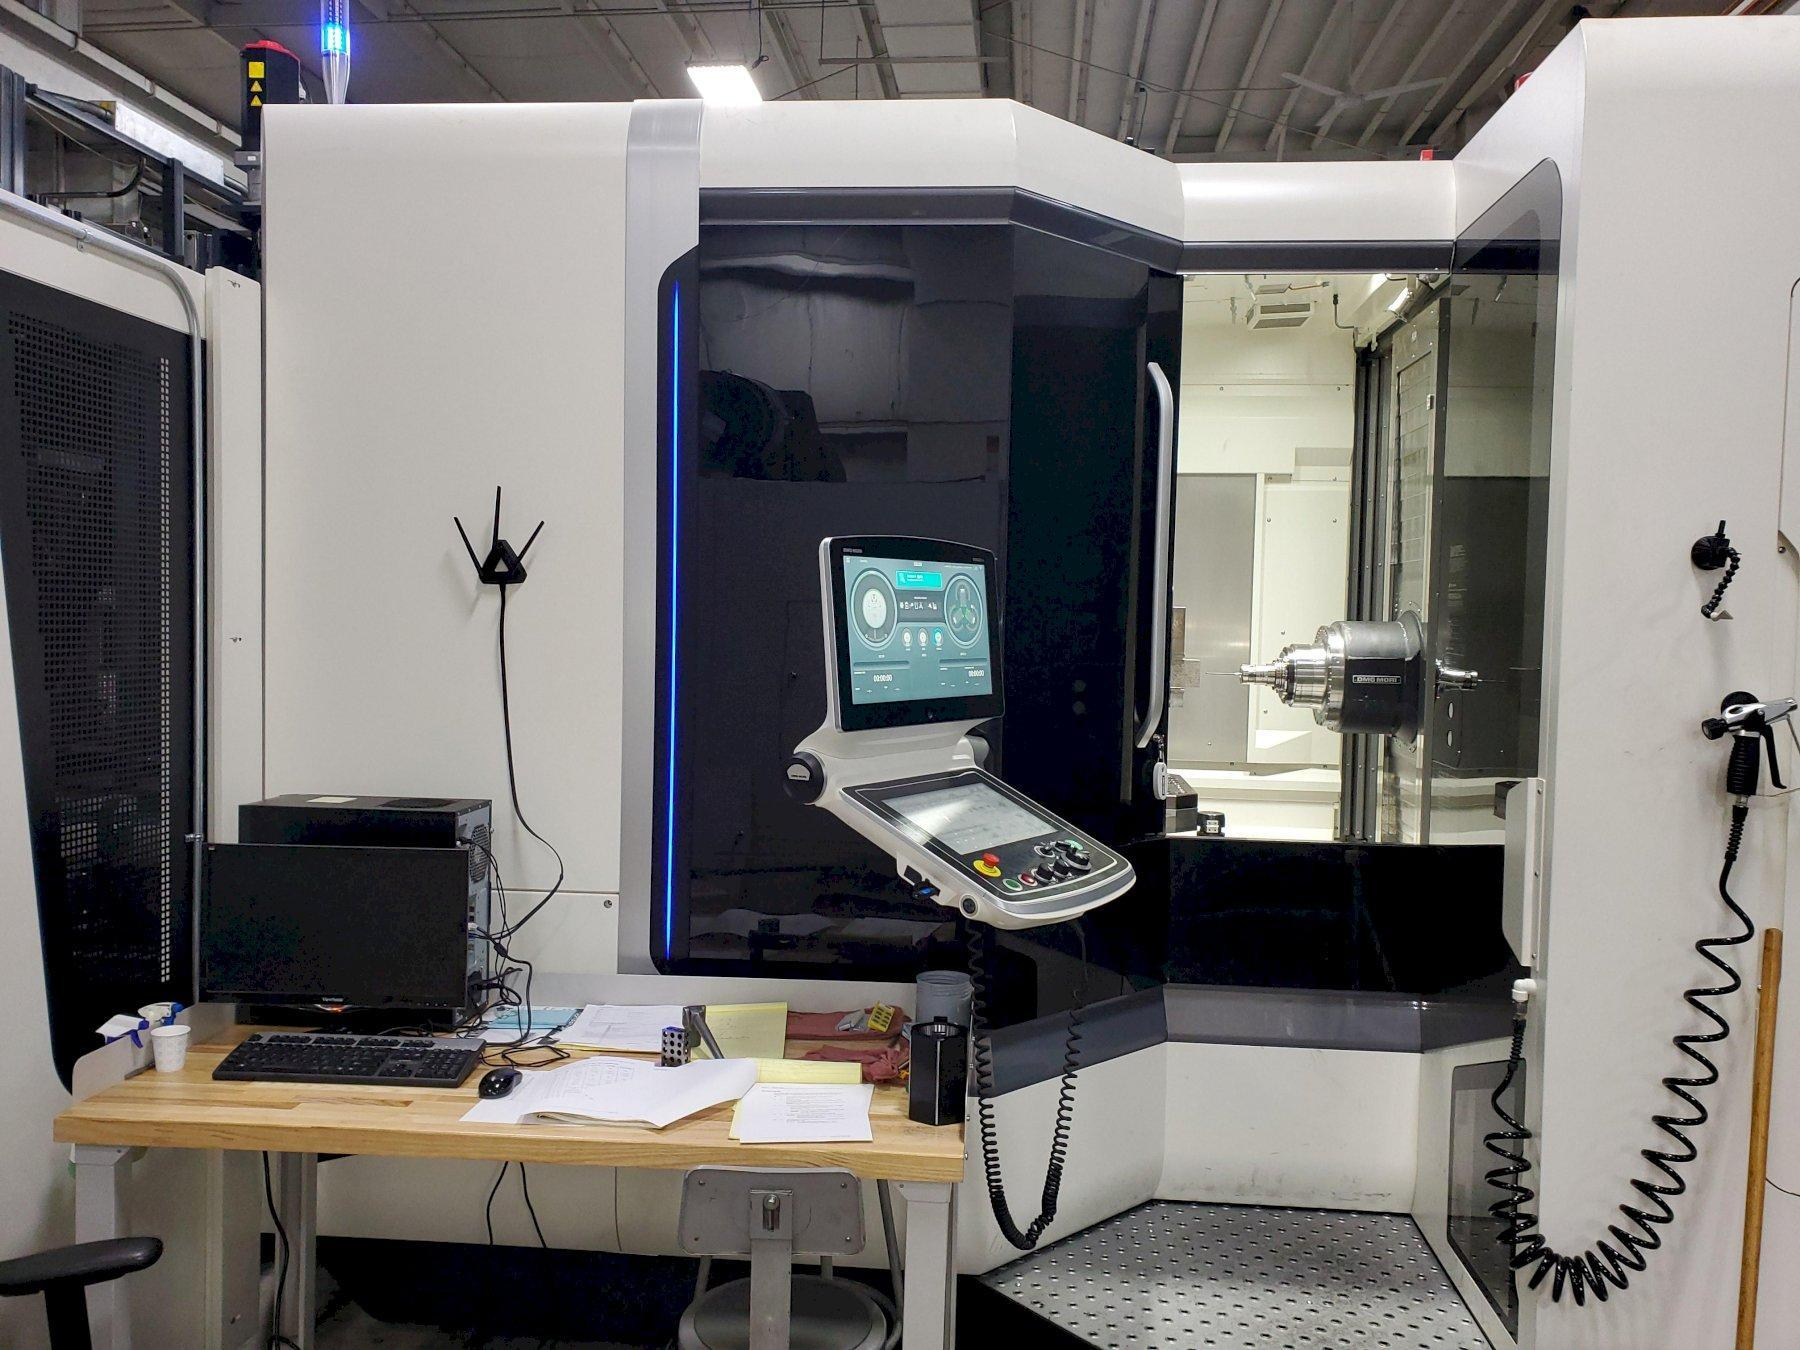 "DMG Mori NHX 6300 2nd GENERATION - LLP CNC Horizontal Machining Center, Celos ERGOline Touch Control, Trvls: 41.3"" x, 35.4"" y, 40.6 z, 12000 RPM, 180 ATC, 12 Pallet System & more, NEW 2020"